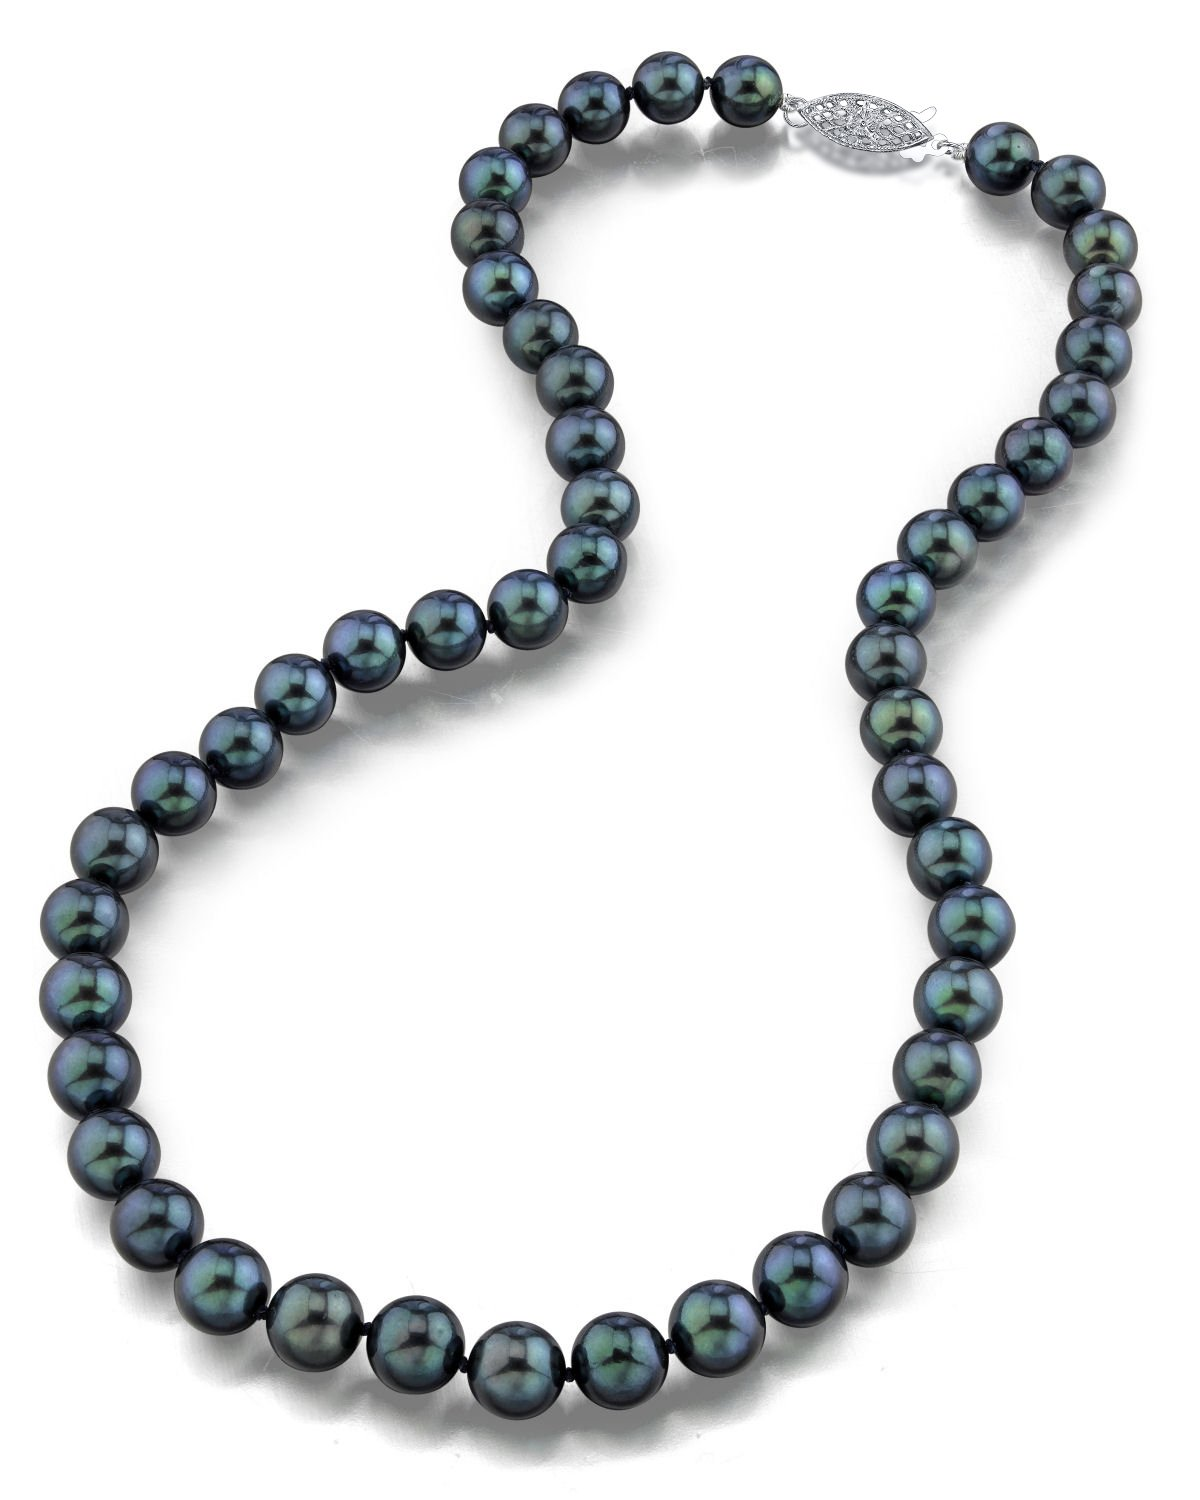 14K Gold Black Akoya Cultured Pearl Necklace - AAA Quality, 18'' Princess Length